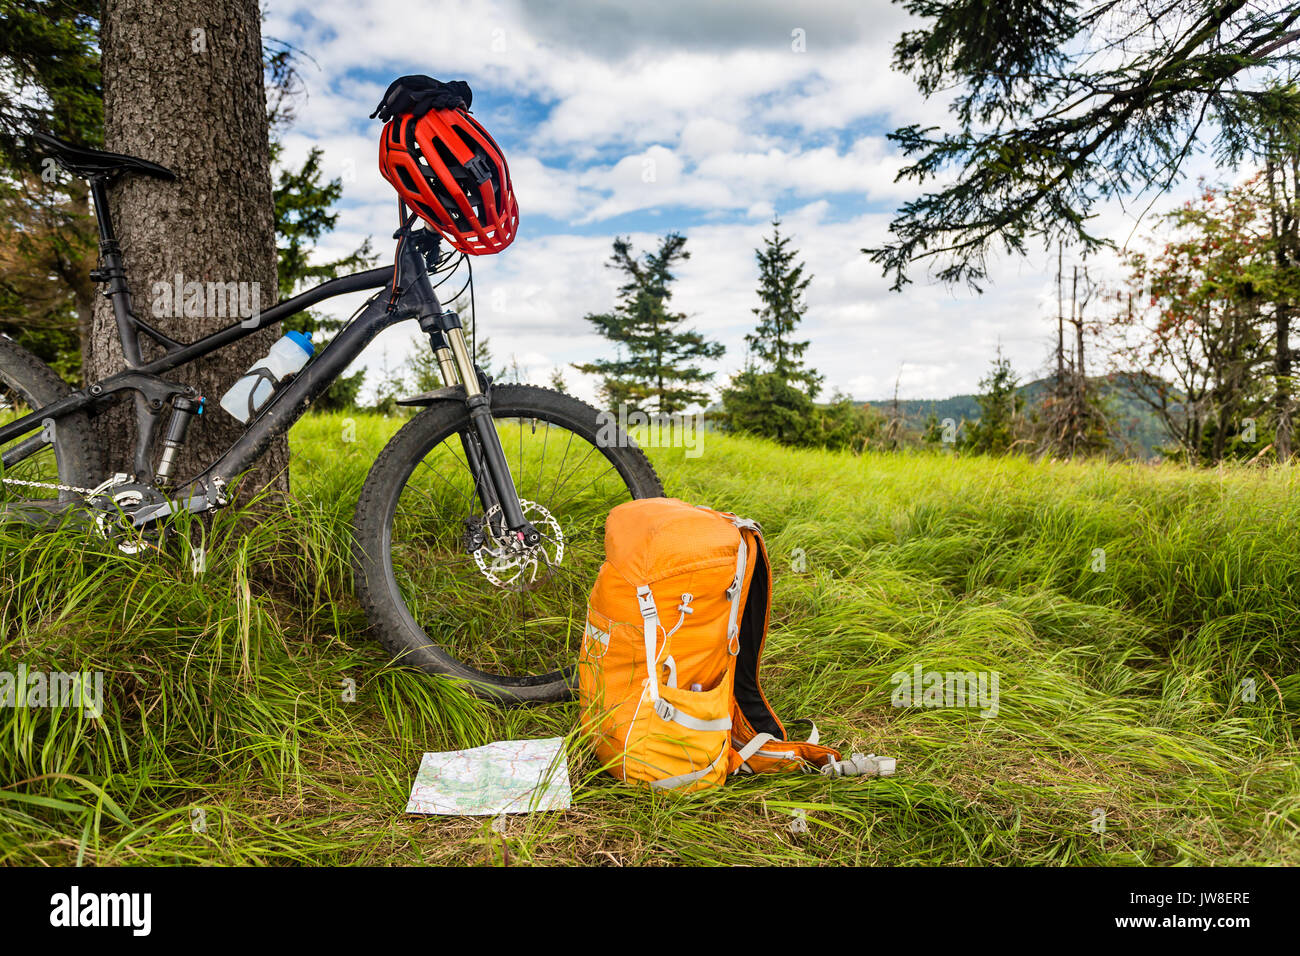 Mountain biking equipment in the woods, bikepacking adventure trip in green mountains. Travel campsite and MTB cycling with backpack, wilderness fores - Stock Image